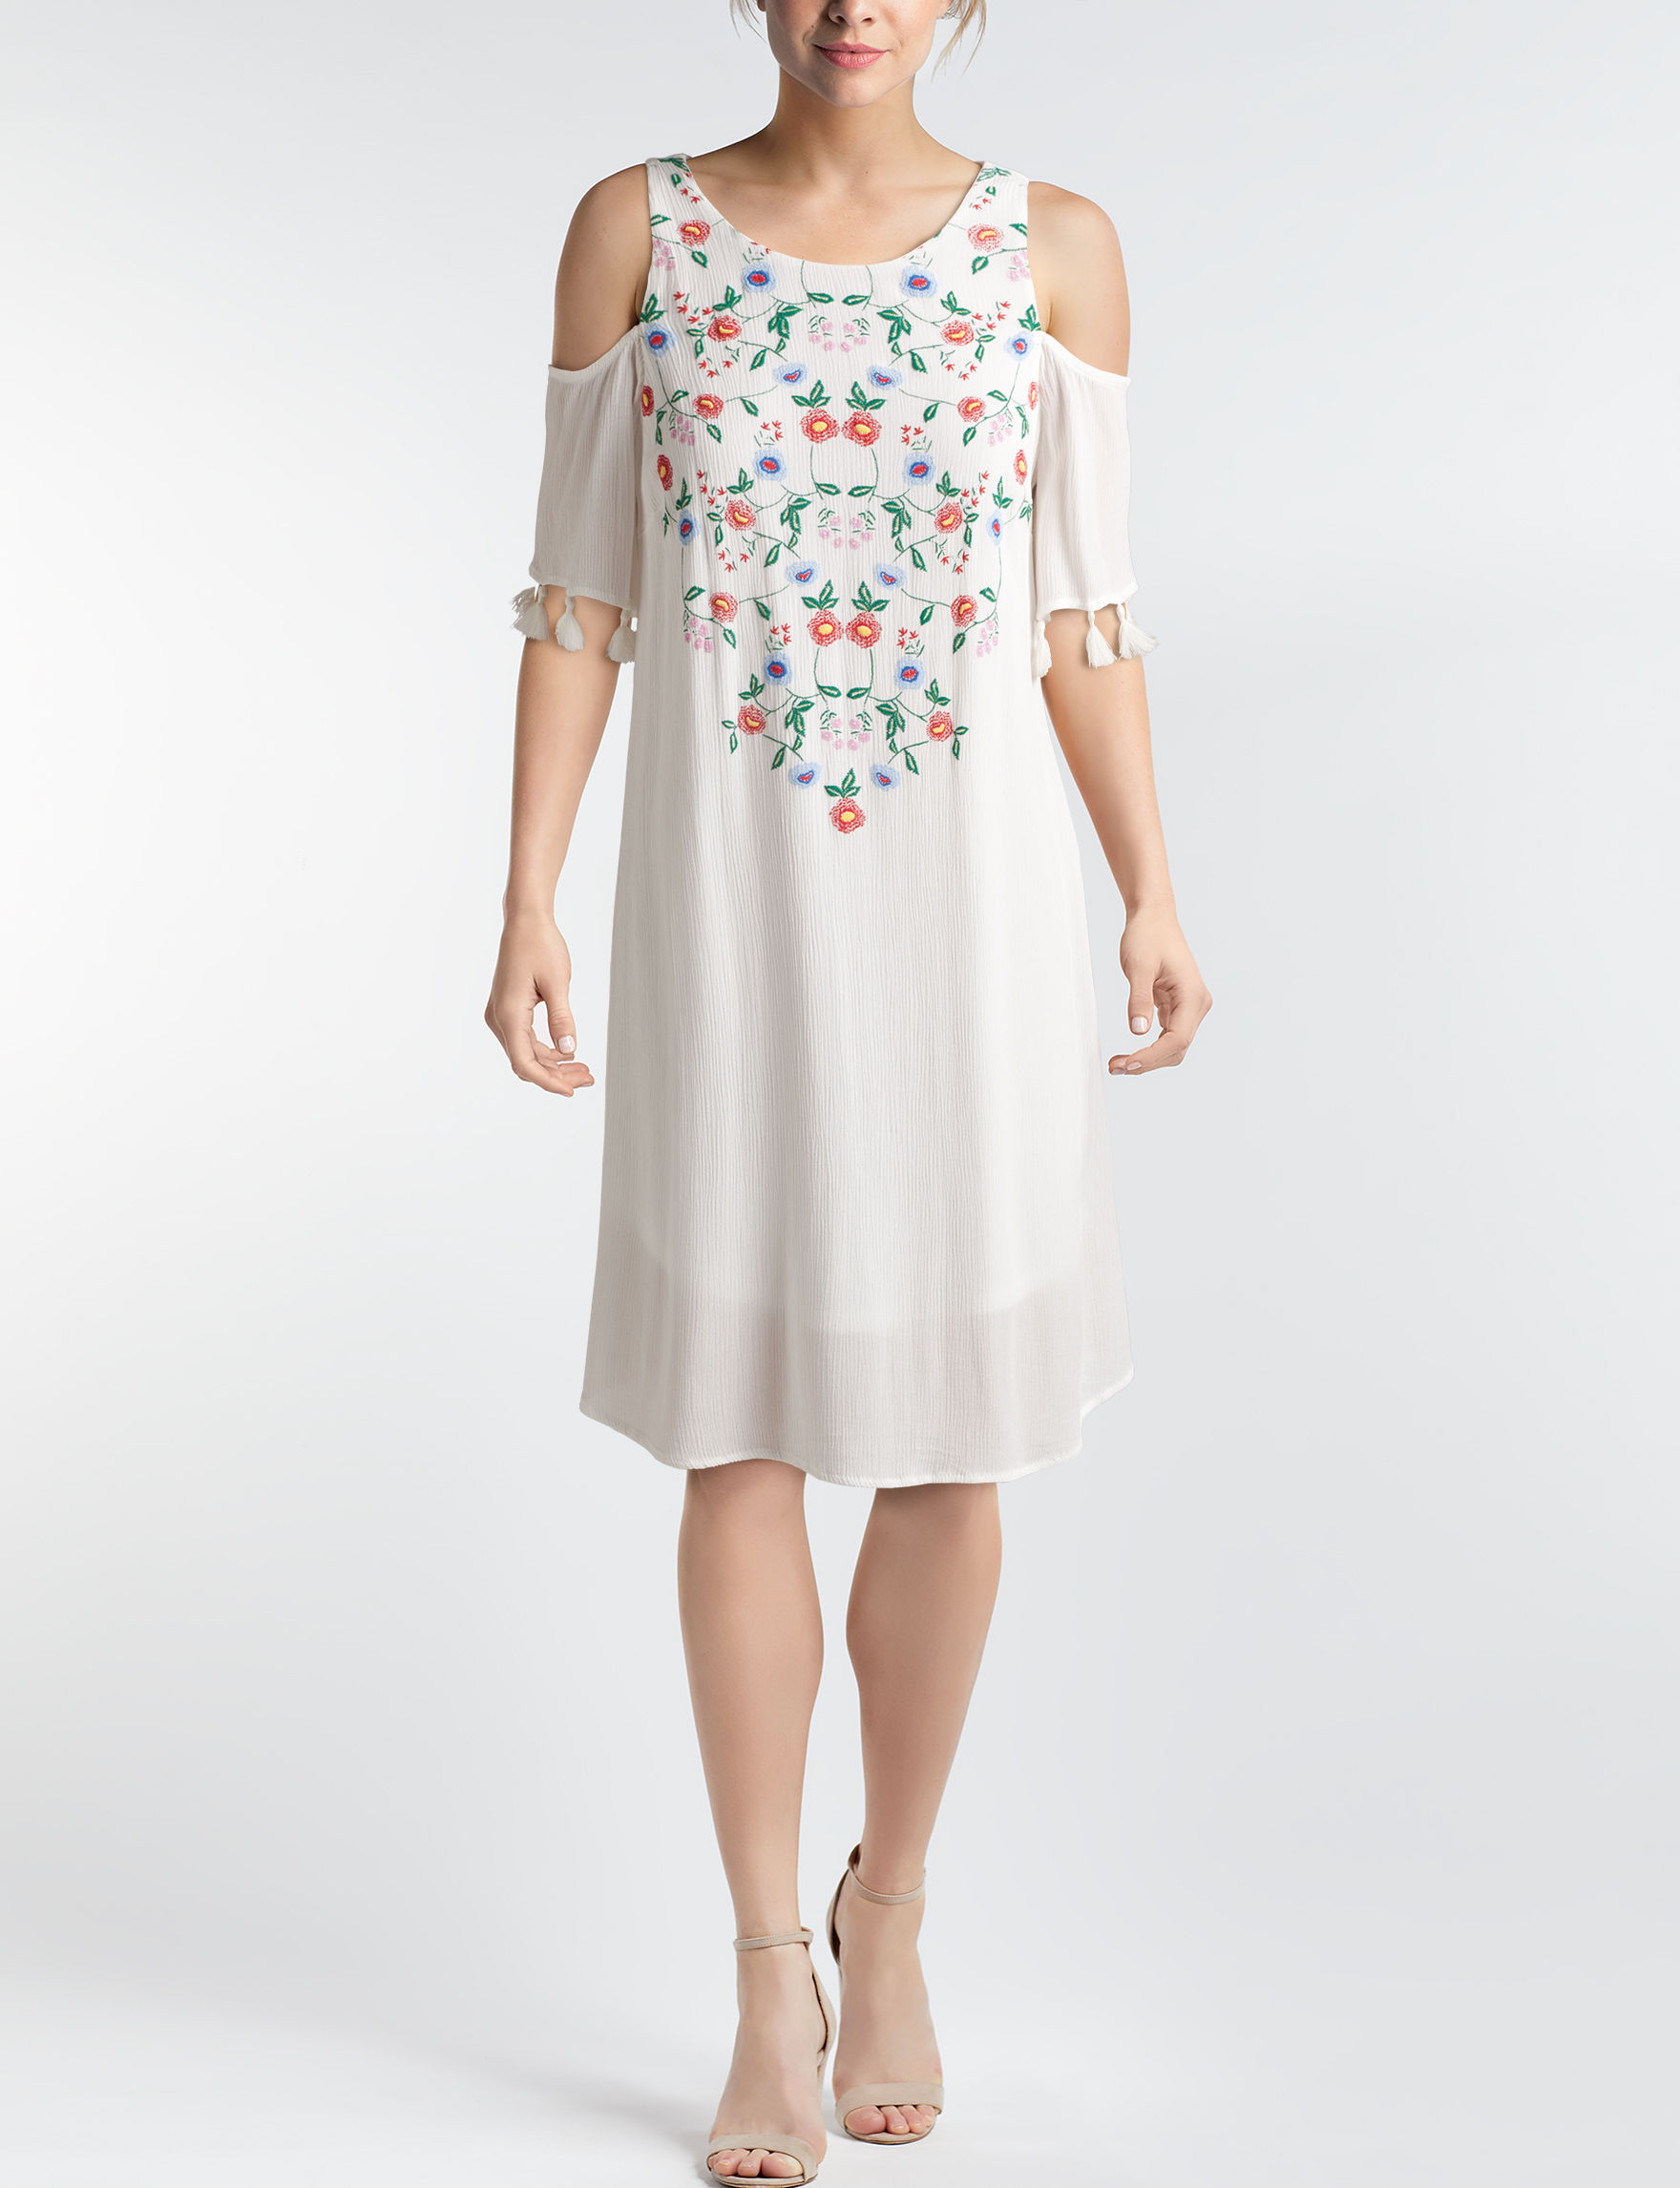 Sequin Hearts White Everyday & Casual Shift Dresses